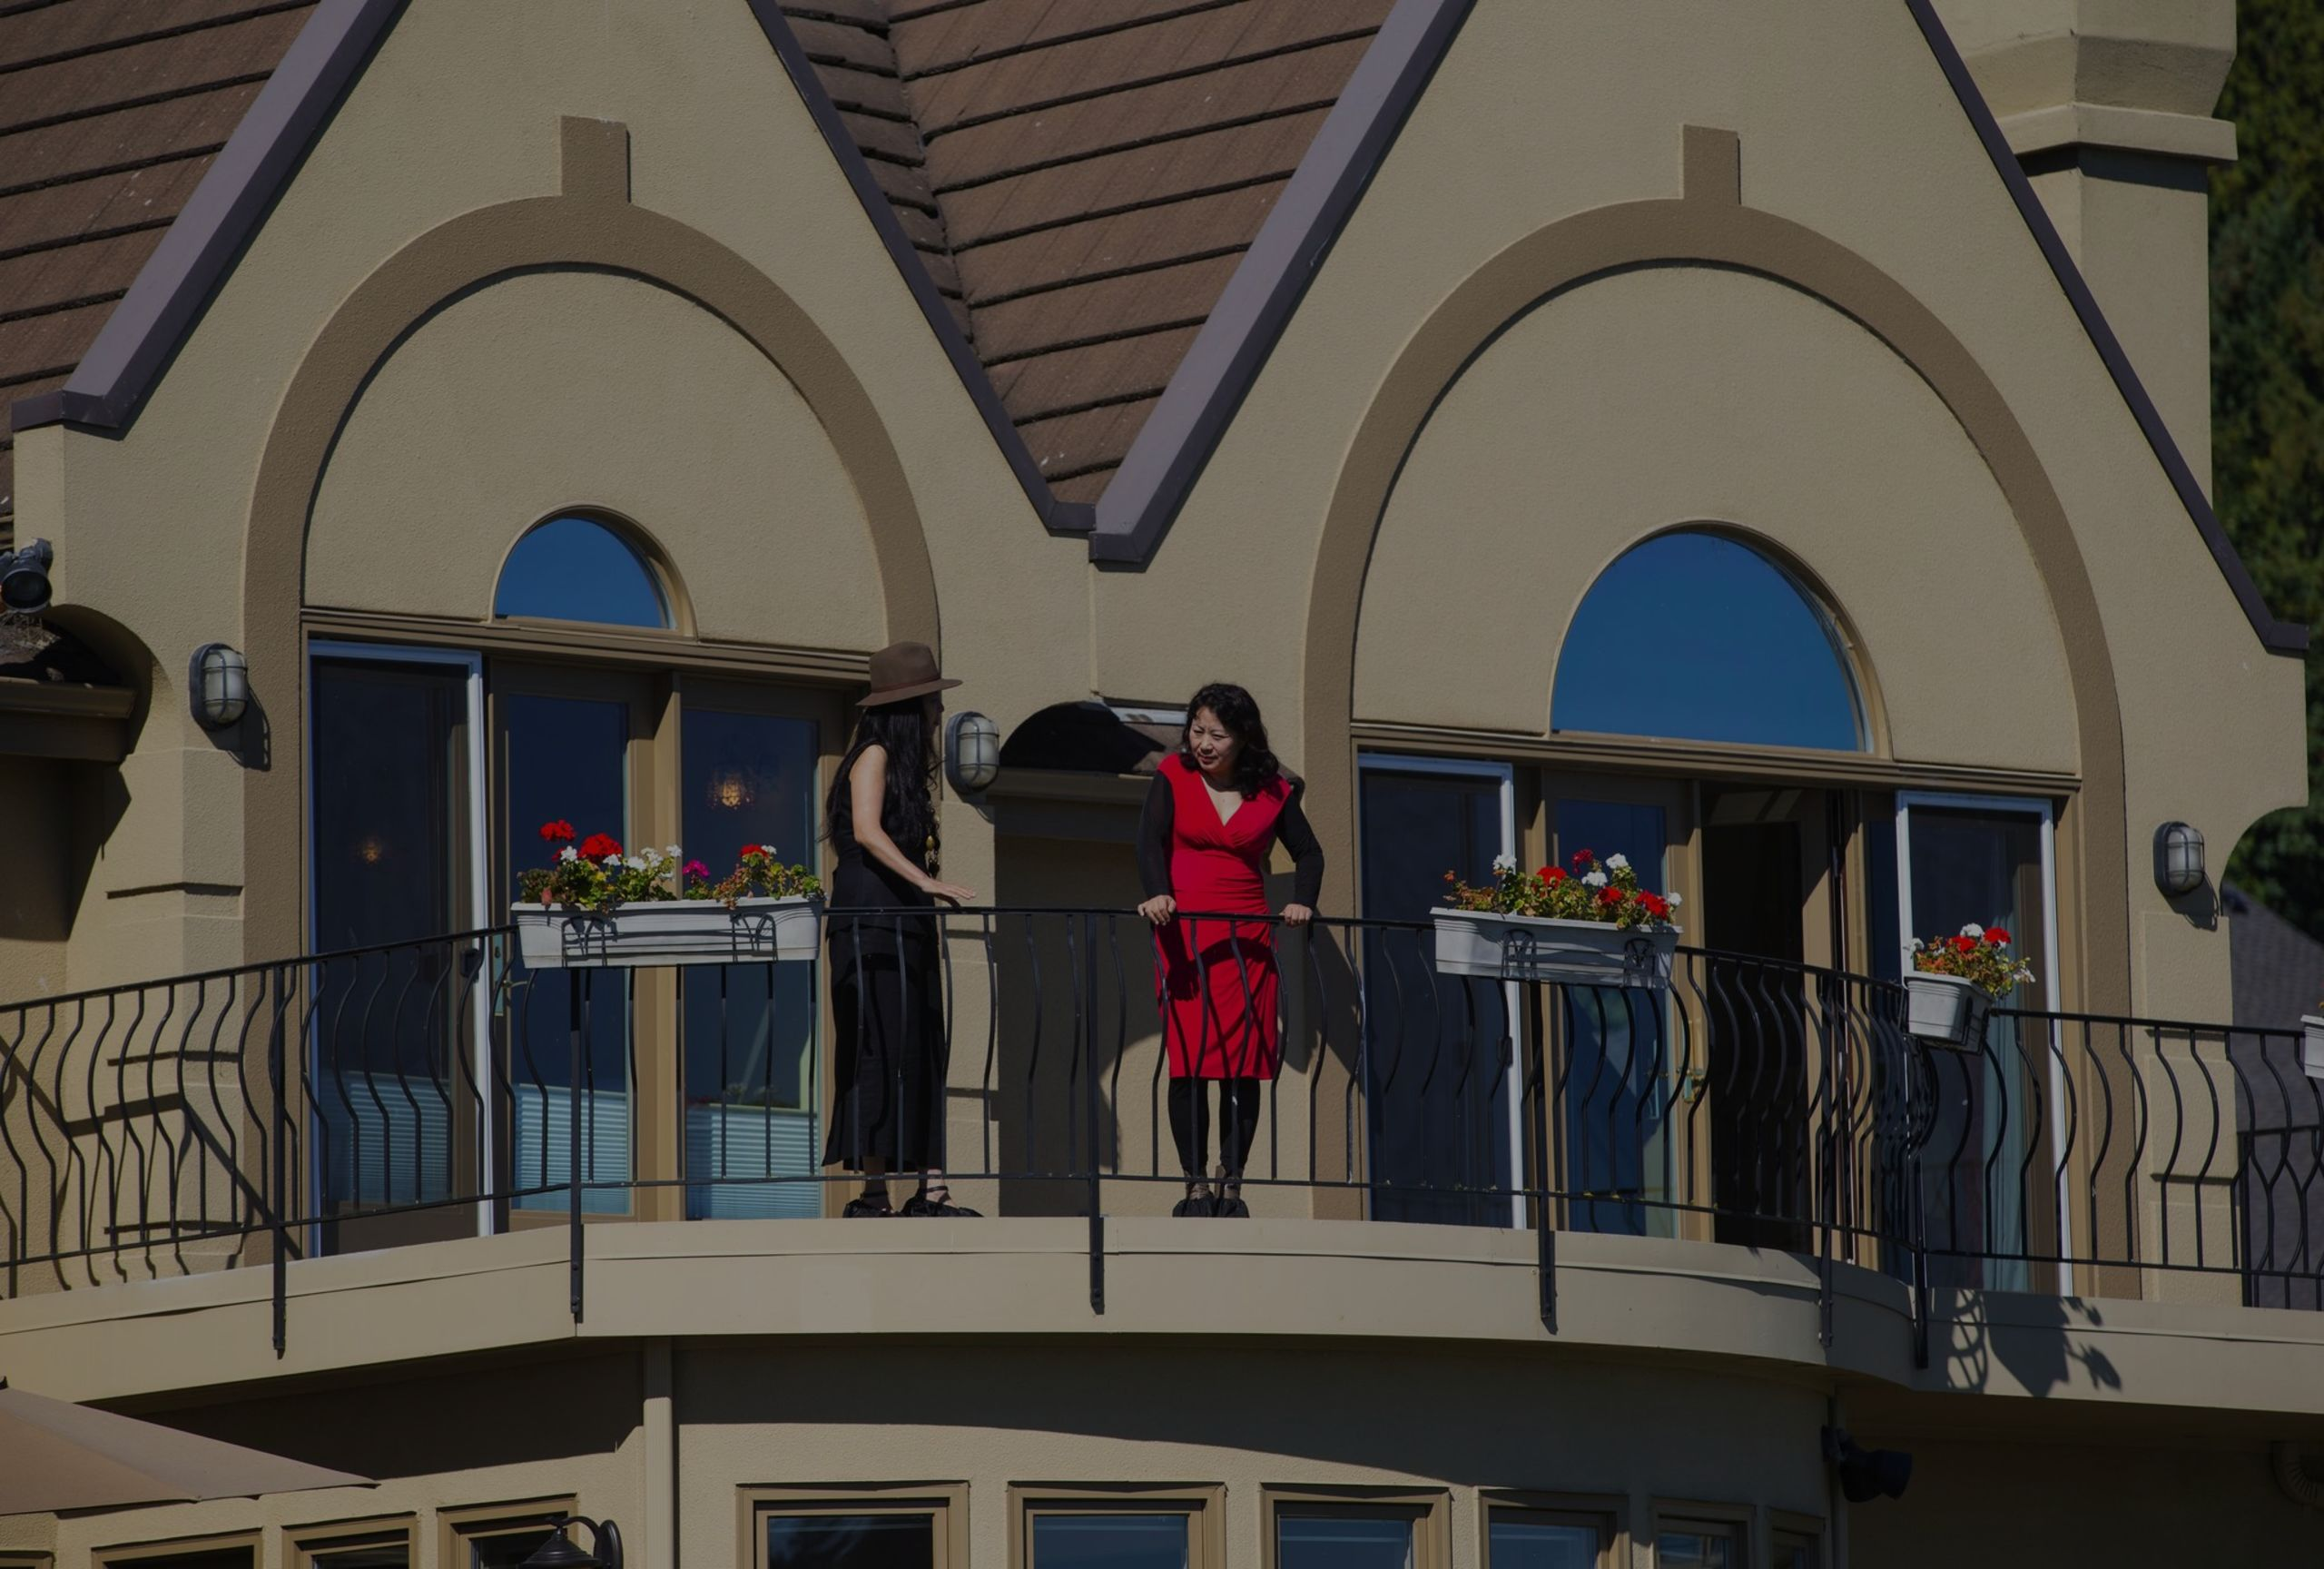 Seattle becomes No. 1 U.S. market for Chinese homebuyers